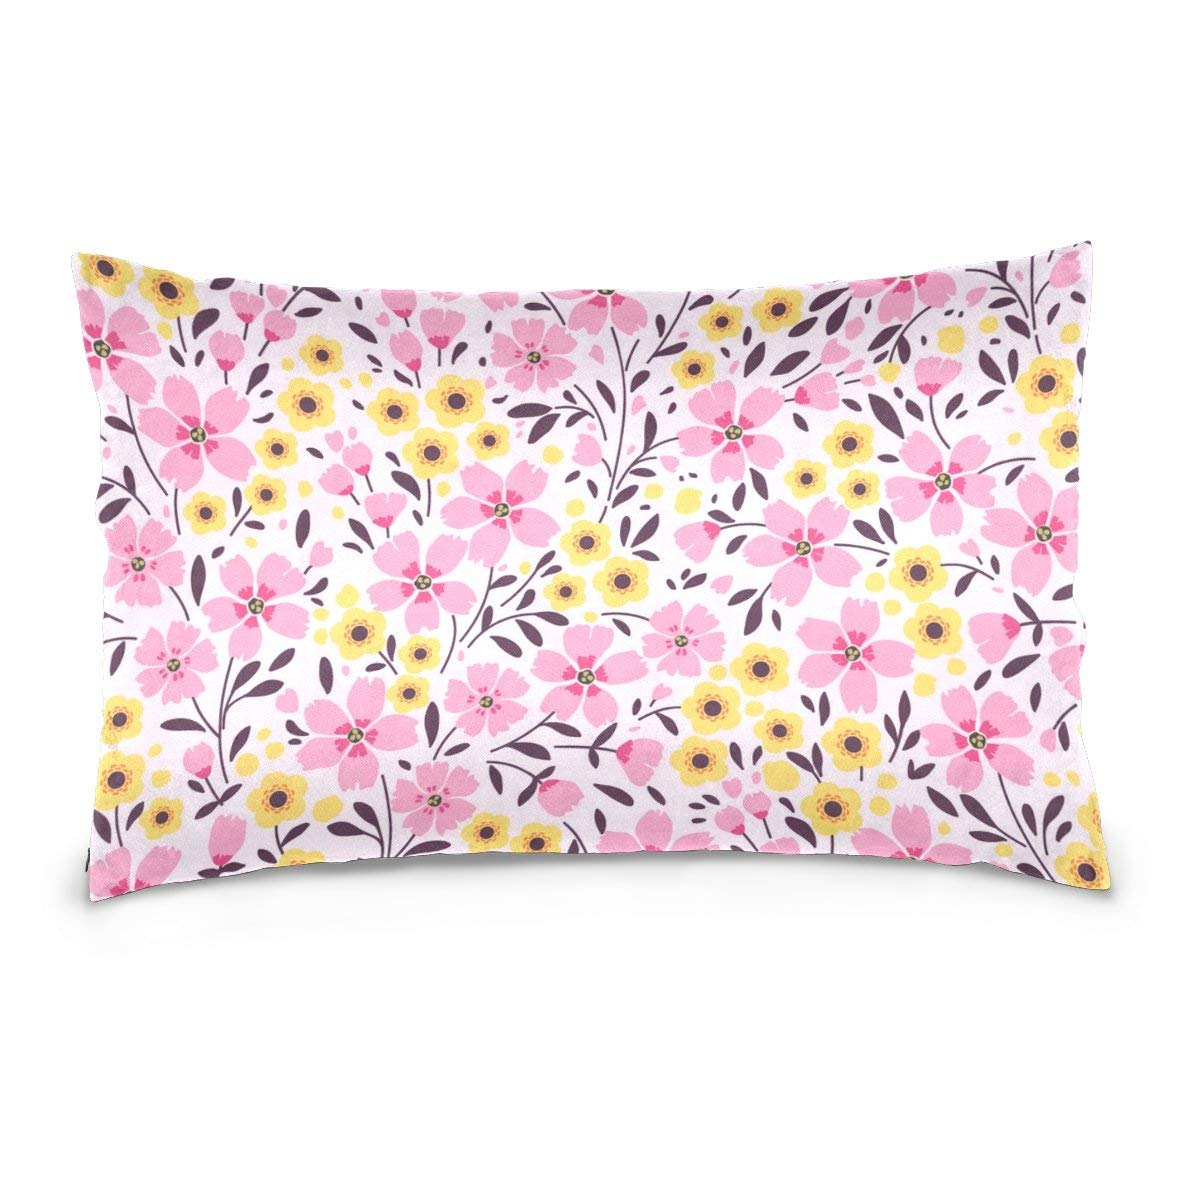 Cotton Velvet Pillowcases Spring Pink Yellow Ditsy Flowers Soft Pillow Protector with Hidden Zipper 20 x 26 Inch